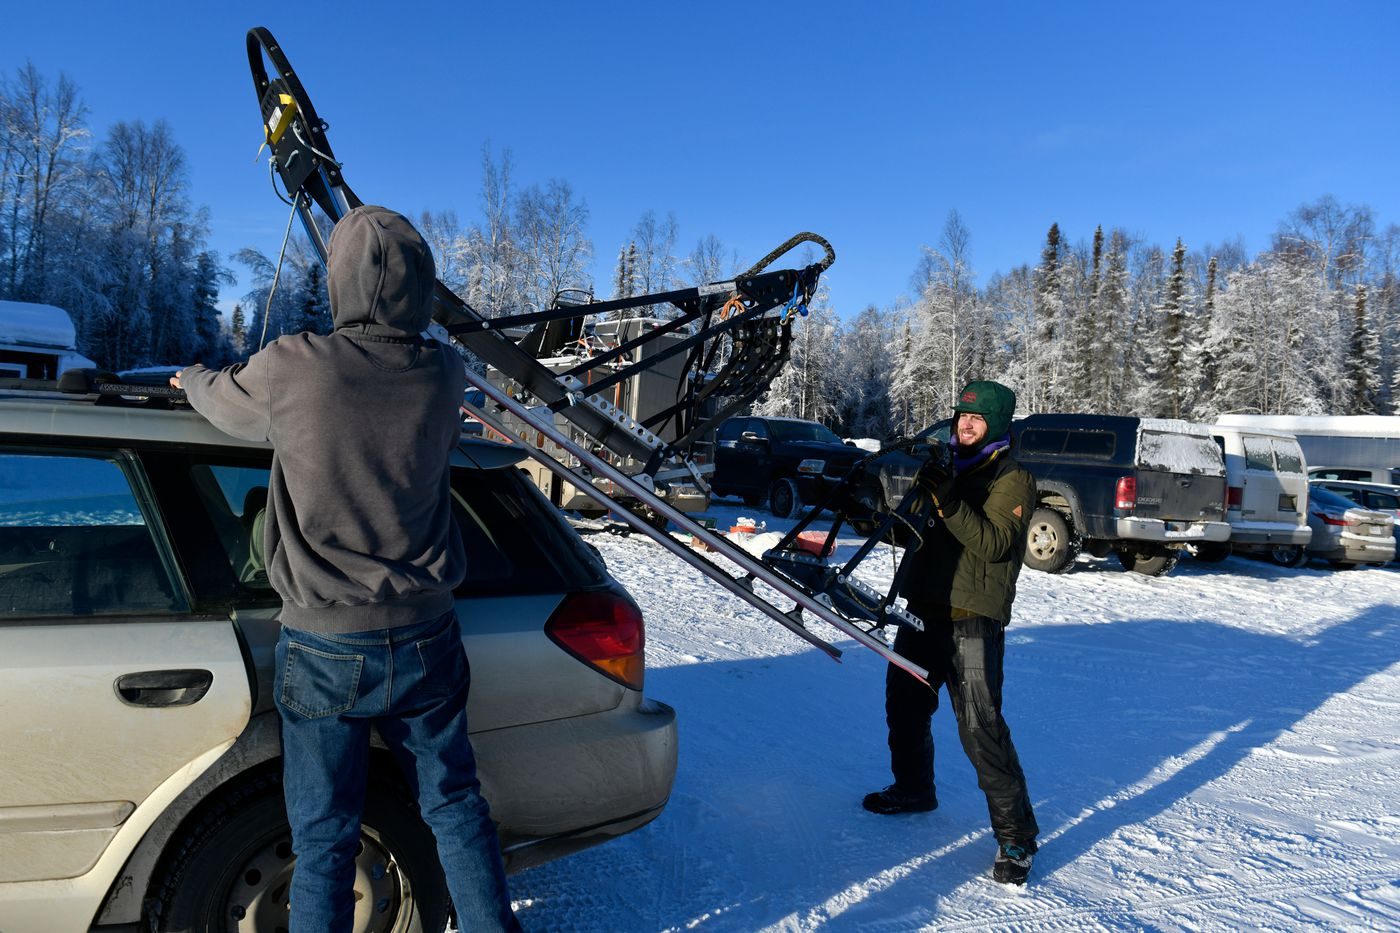 Sean Underwood, right, helps unload a sled he's borrowing to run Iditarod on January 29, 2021, in Talkeetna. (Marc Lester / ADN)